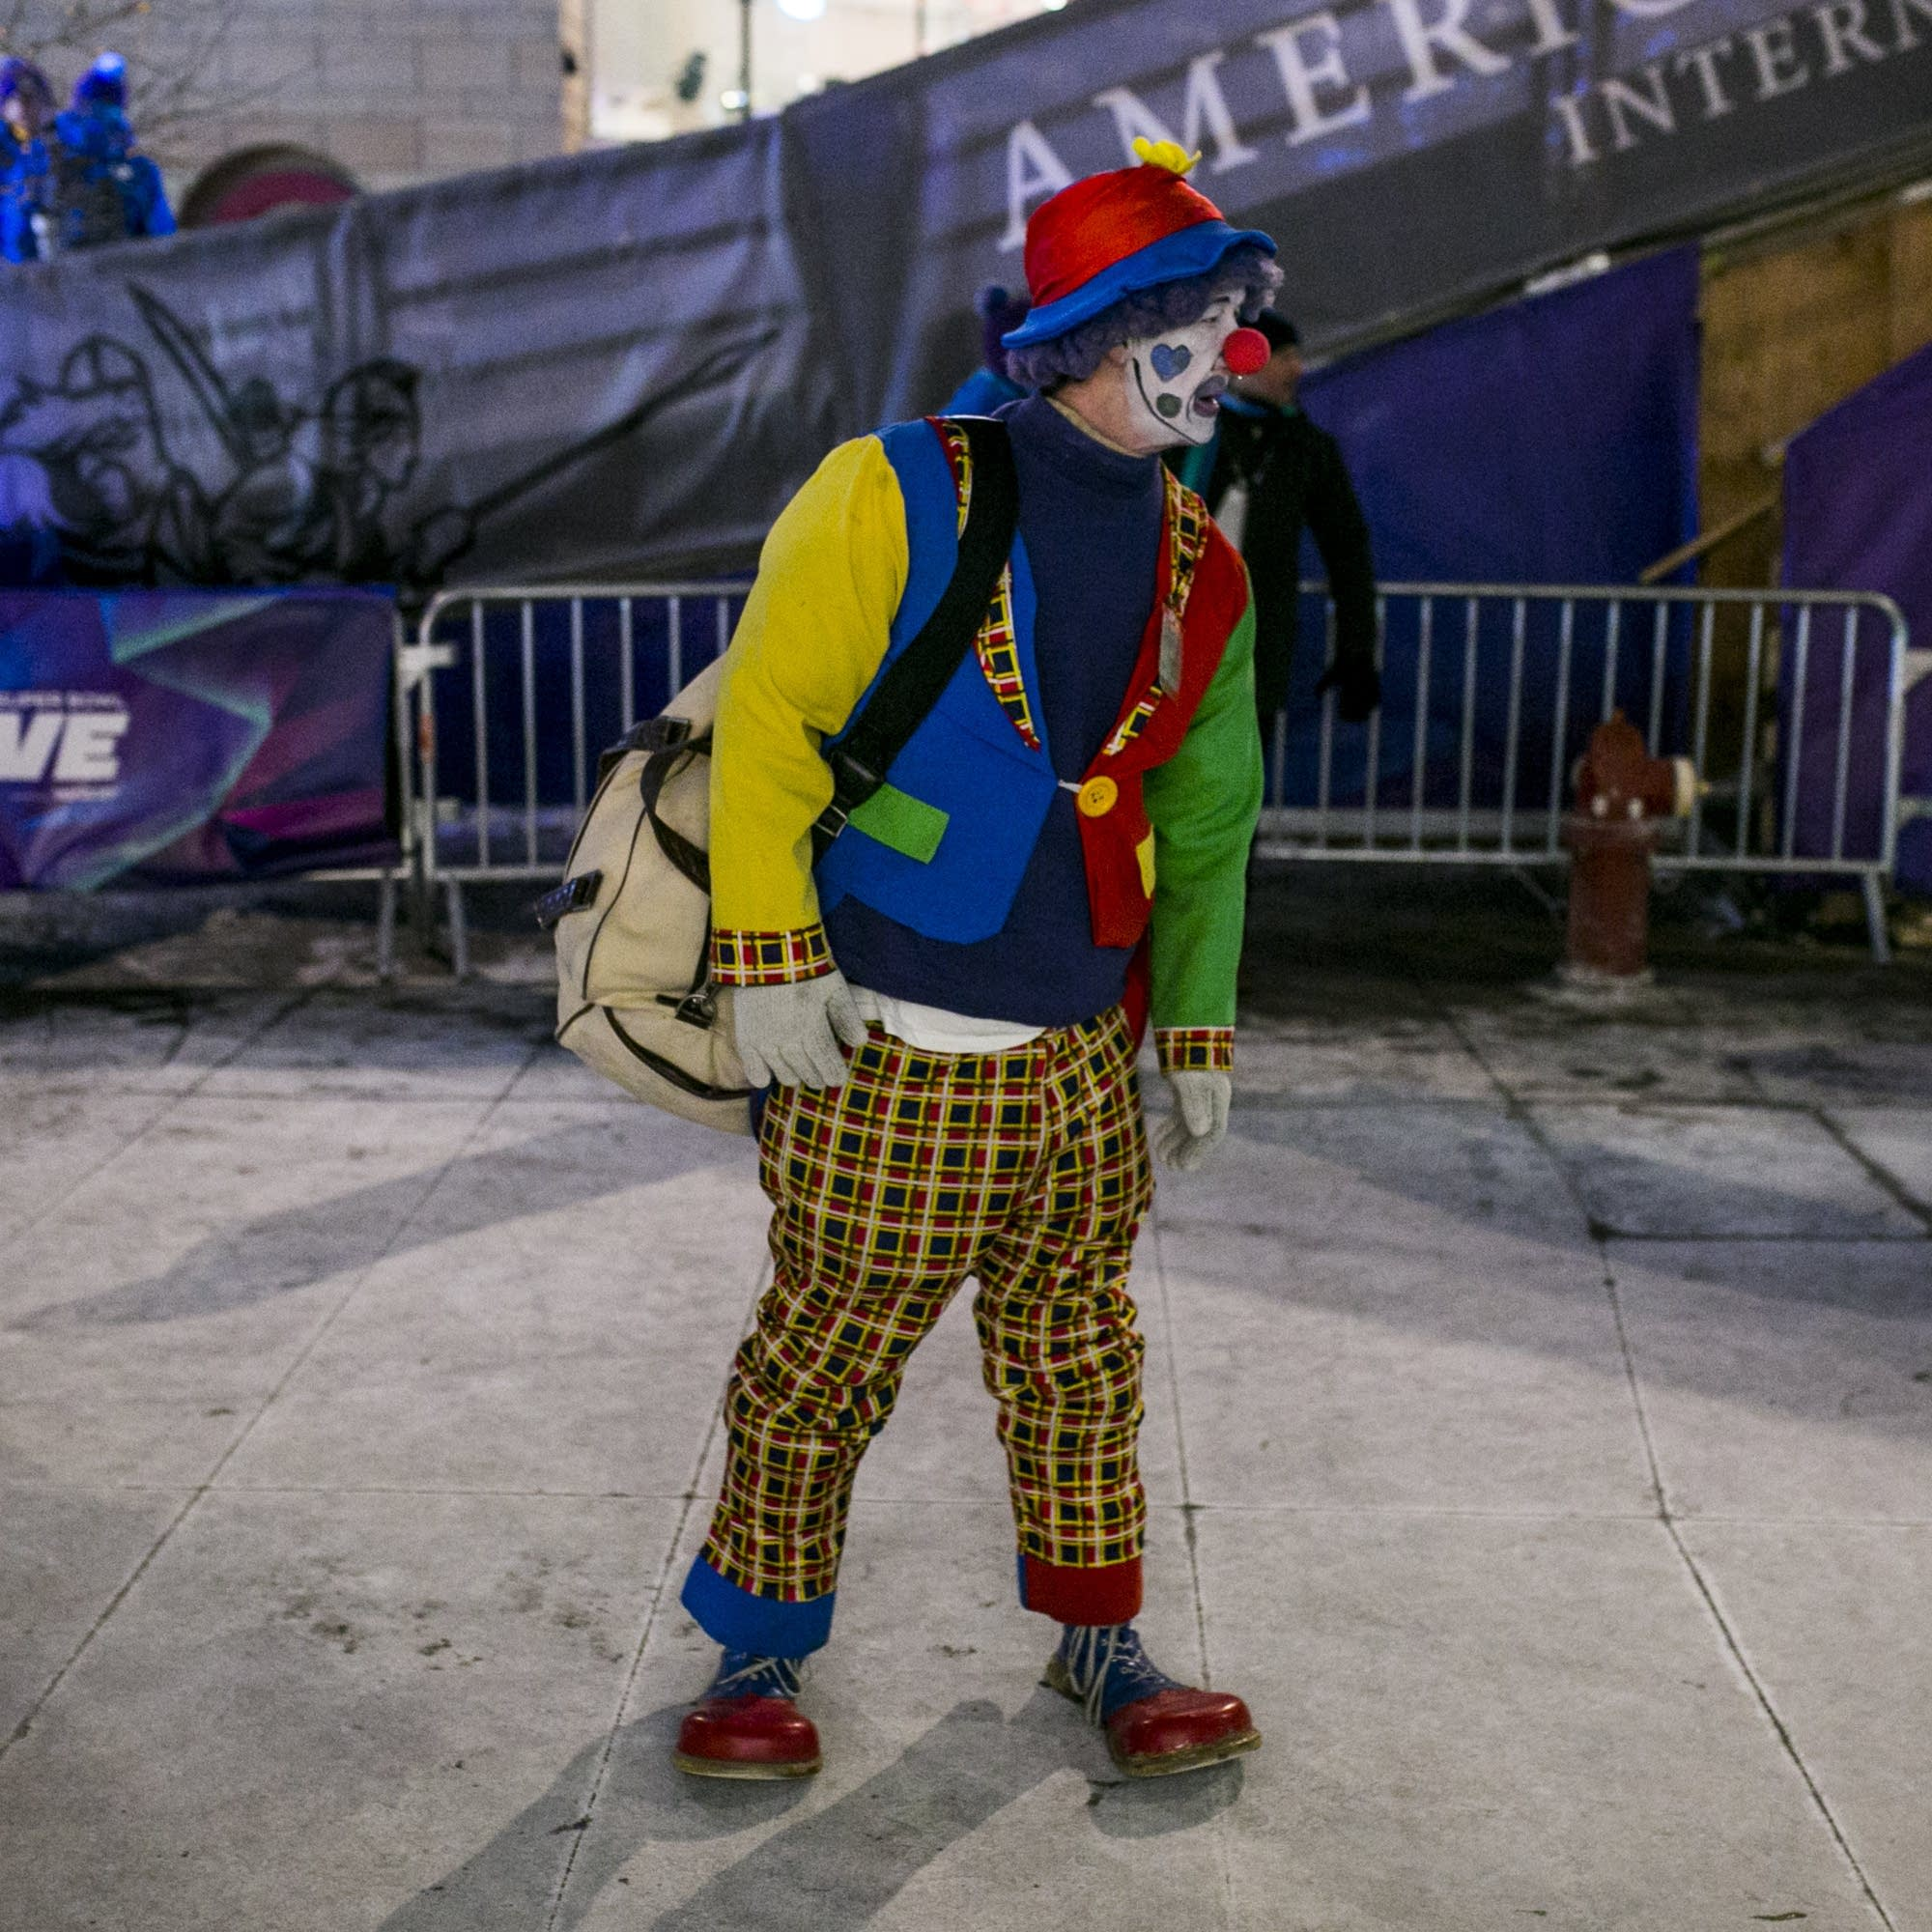 A clown stands on Nicollet Mall